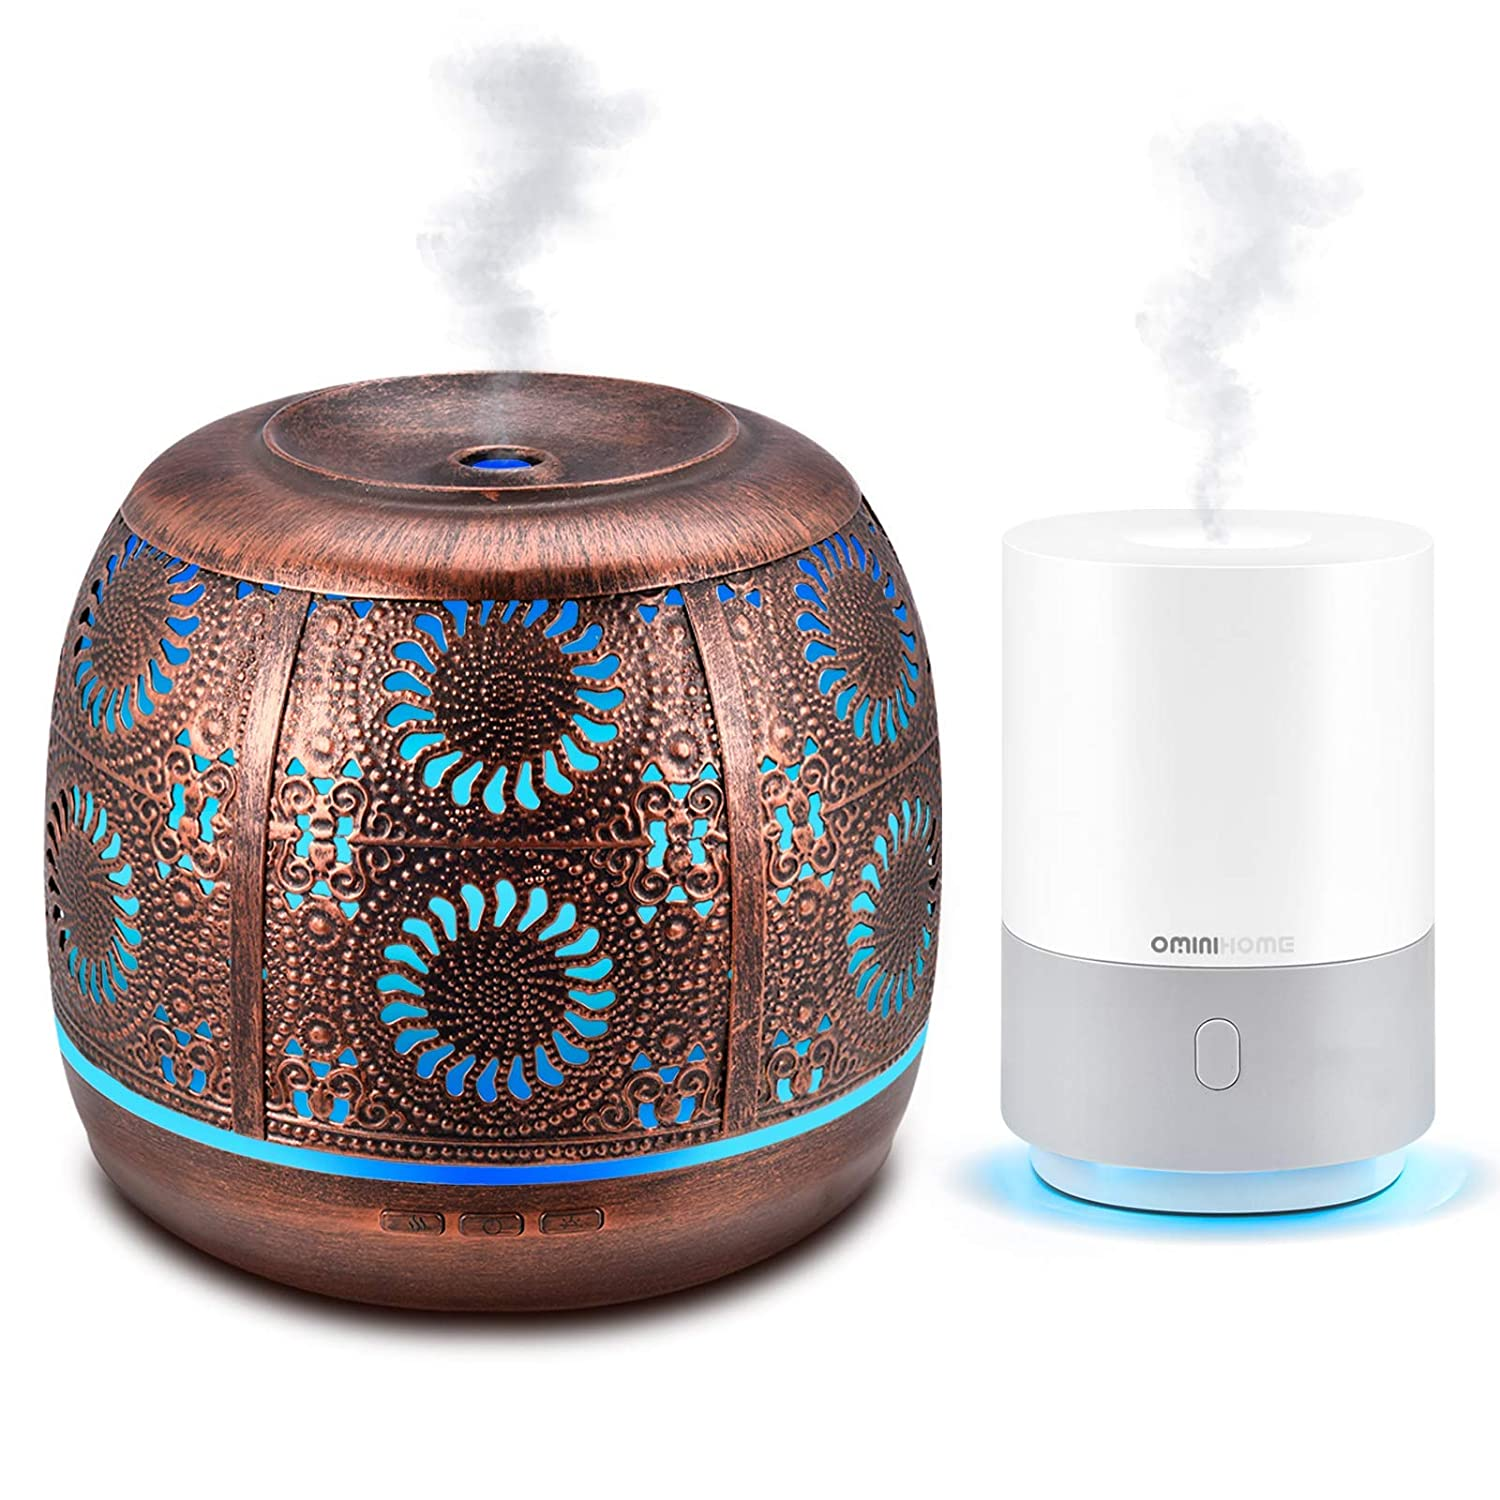 Ominihome Essential Oil Diffuser, Oil Diffuser For Essential Oils With Waterless Auto Shut-Off Protection, Ultrasonic Cool Mist Humidifier, Aromatherapy Diffuser for Home Decor